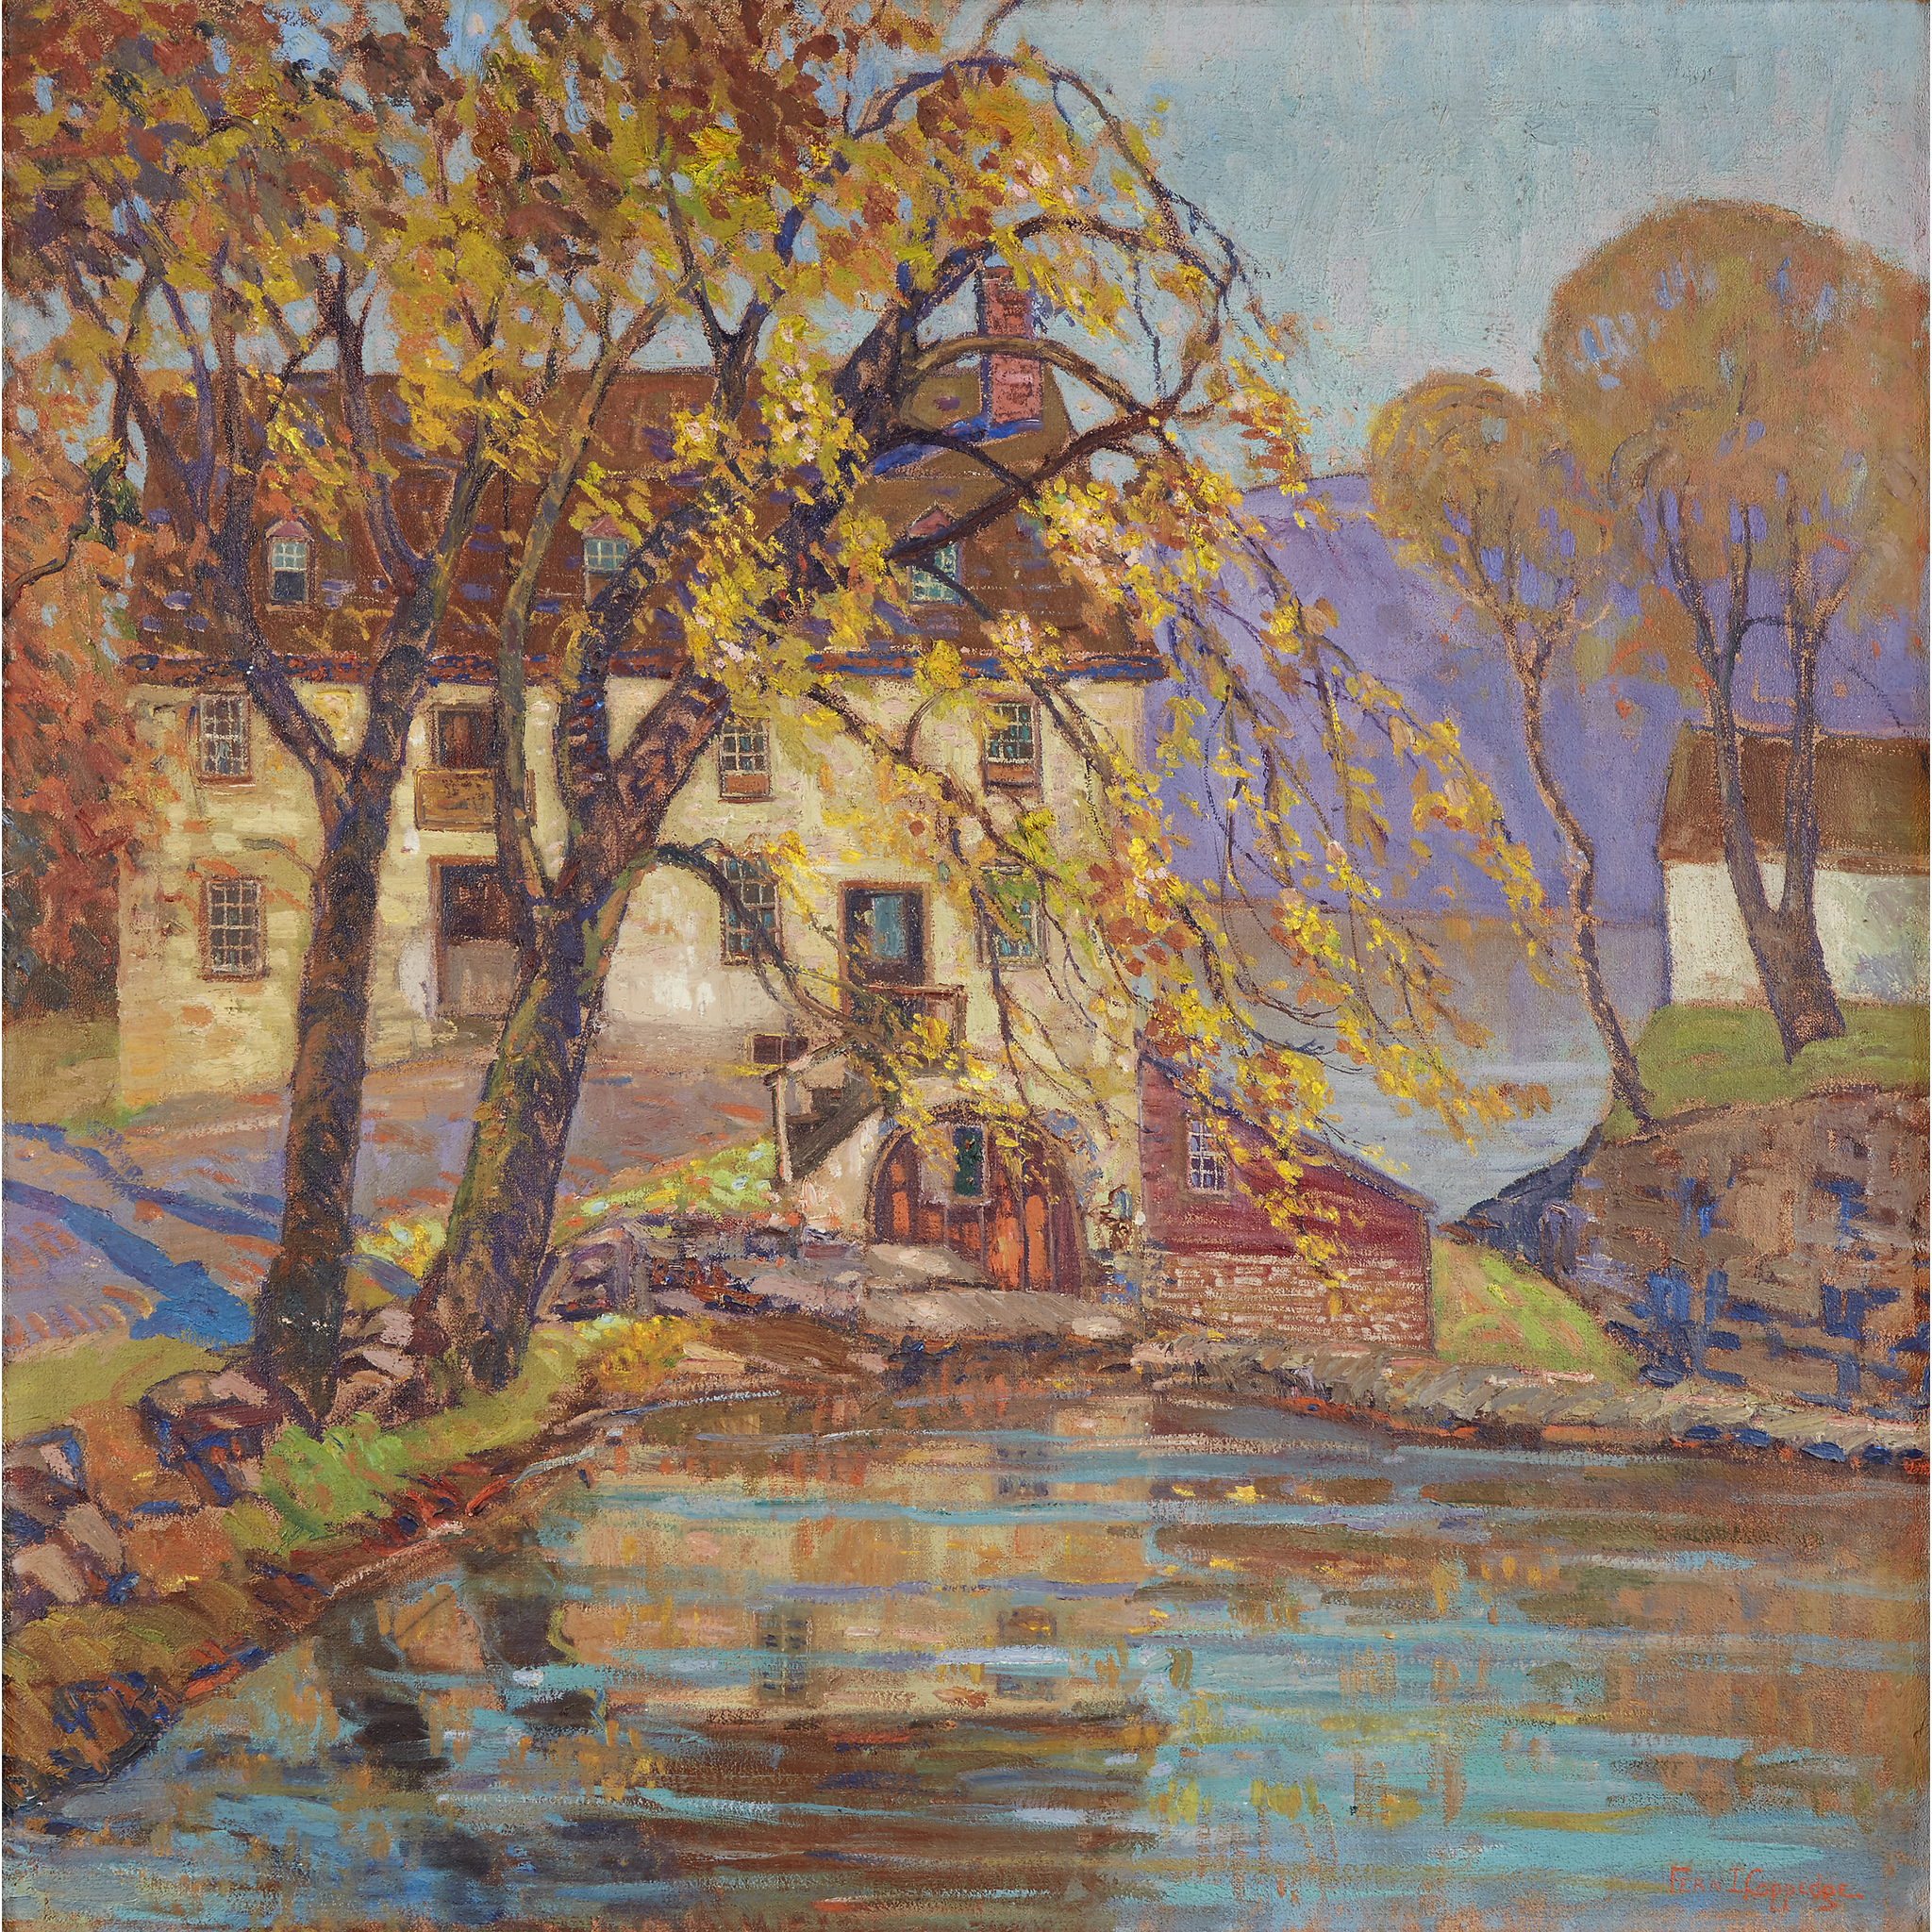 Fern Isabel Coppedge (American, 1883–1951), The Old Grist Mill, Bucks County, Signed, oil on canvas, 30 x 30 ¼ in., $50,000-80,000, to be offered at Freeman's on 06.09.2019